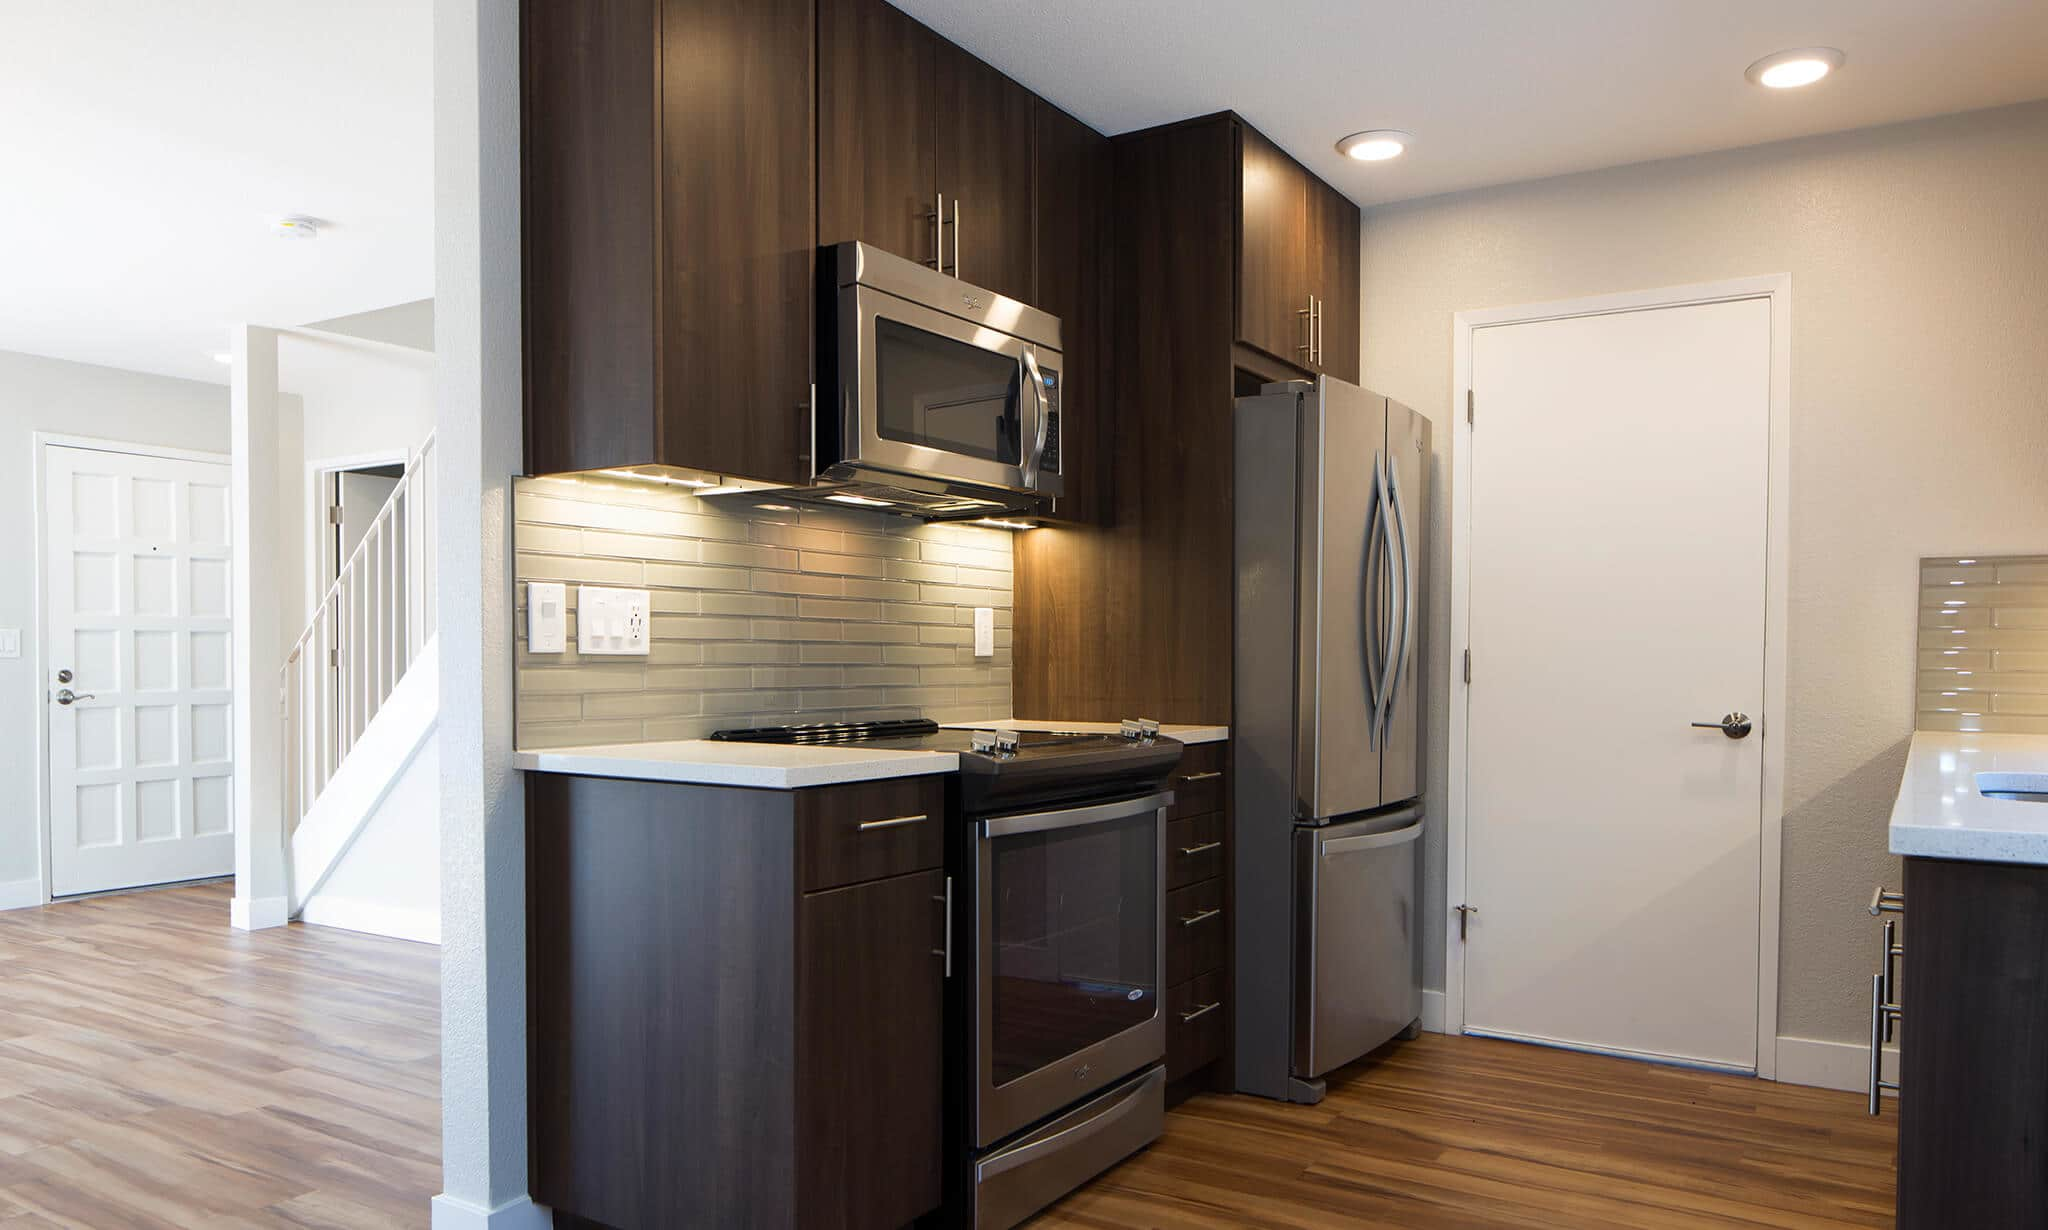 300 Granada Apartments apartments in Mountain View CA to rent photo 1